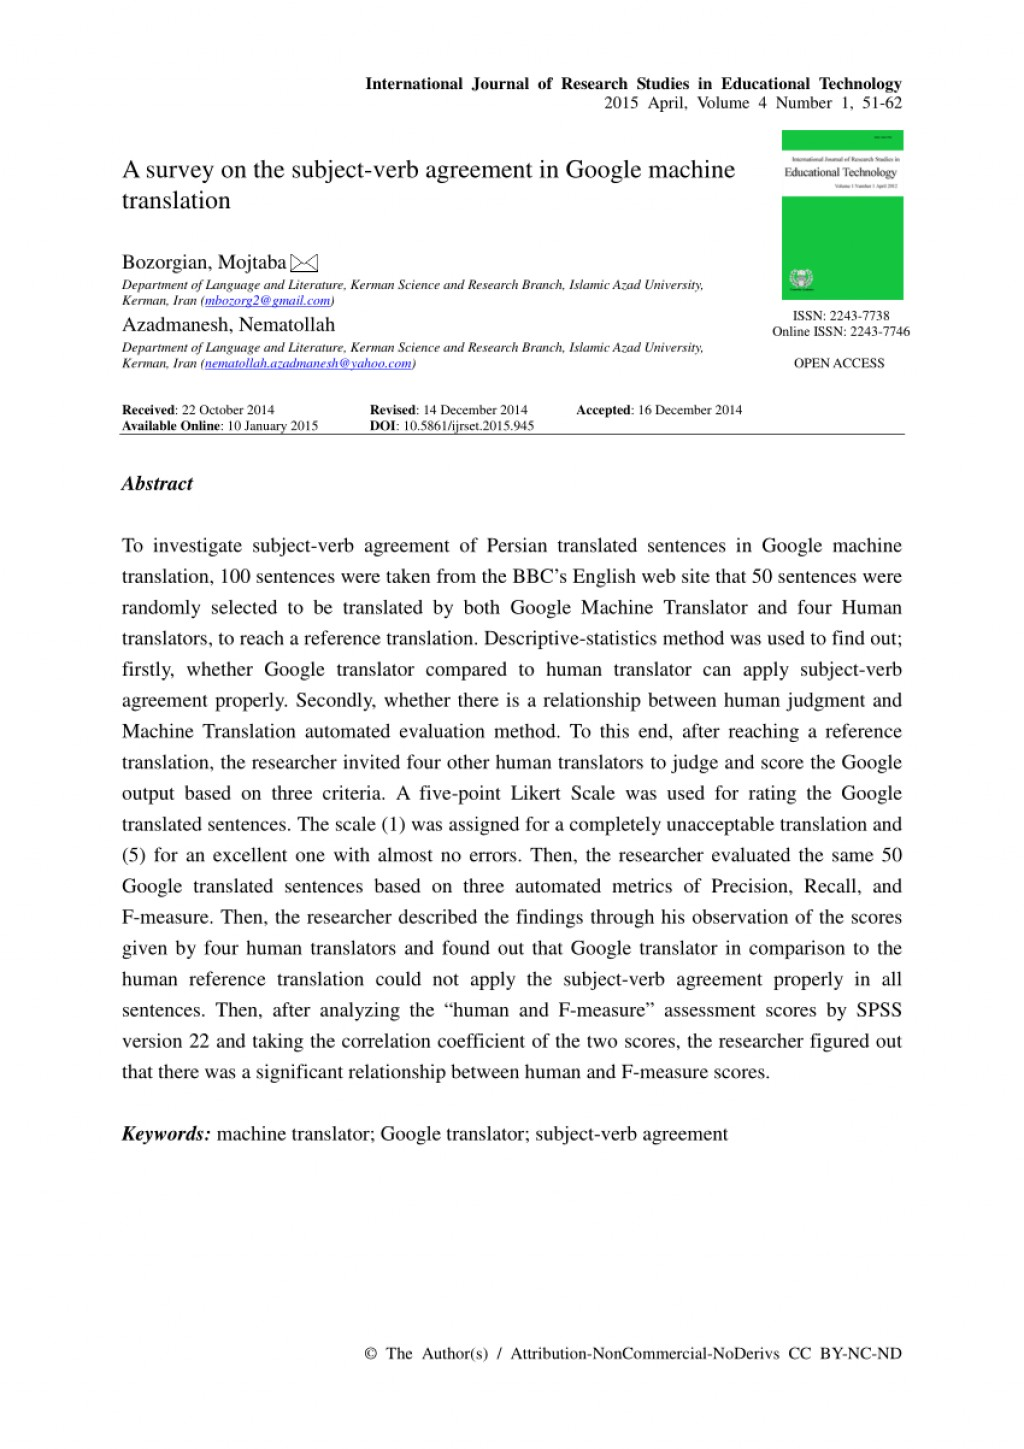 001 Research Paper Google Translate Papers Fascinating Large